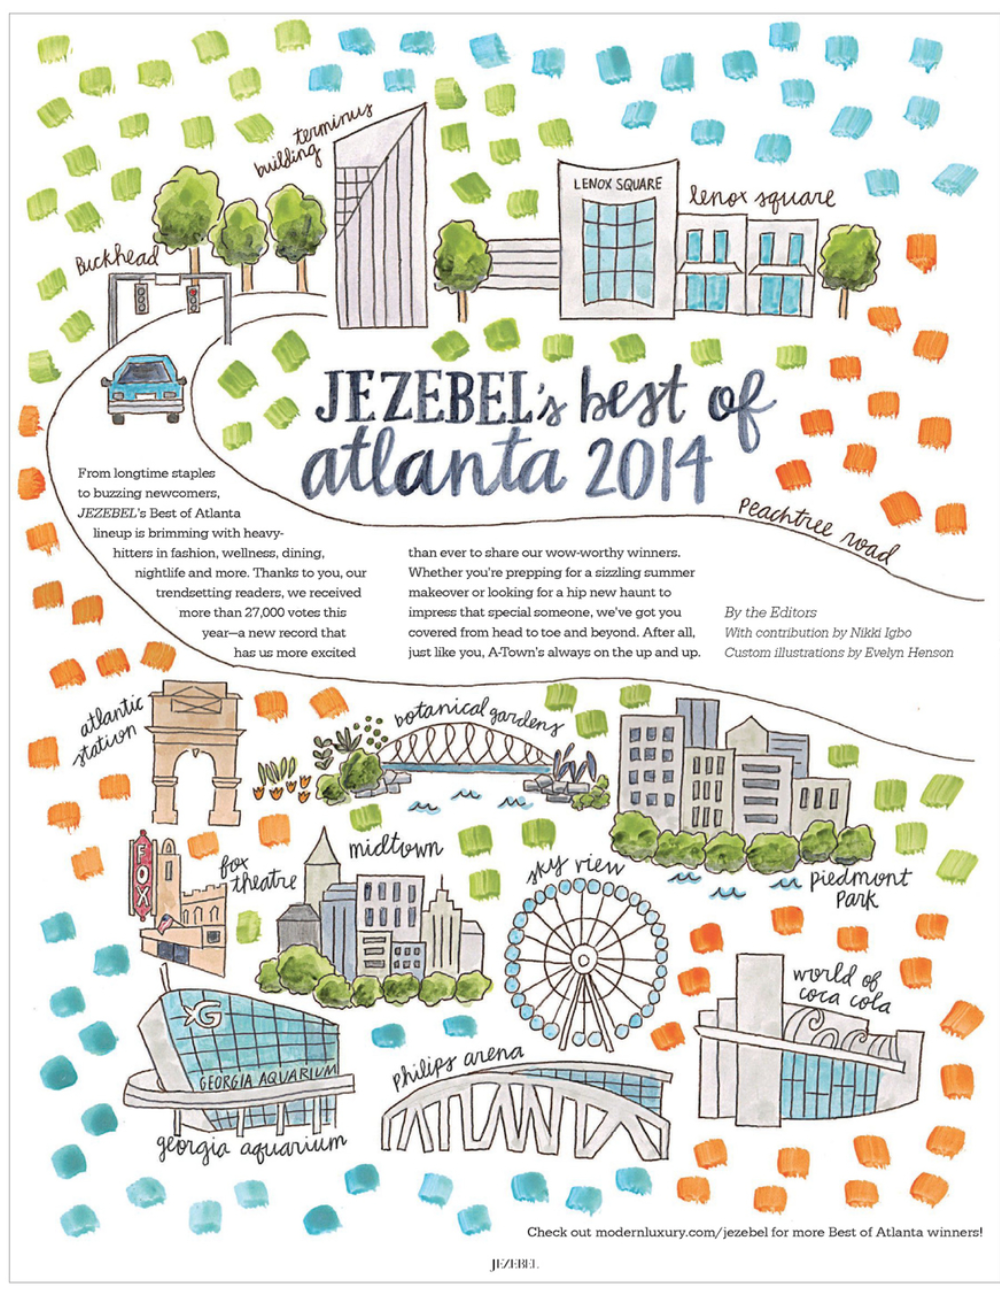 Jezebel Best of Atlanta